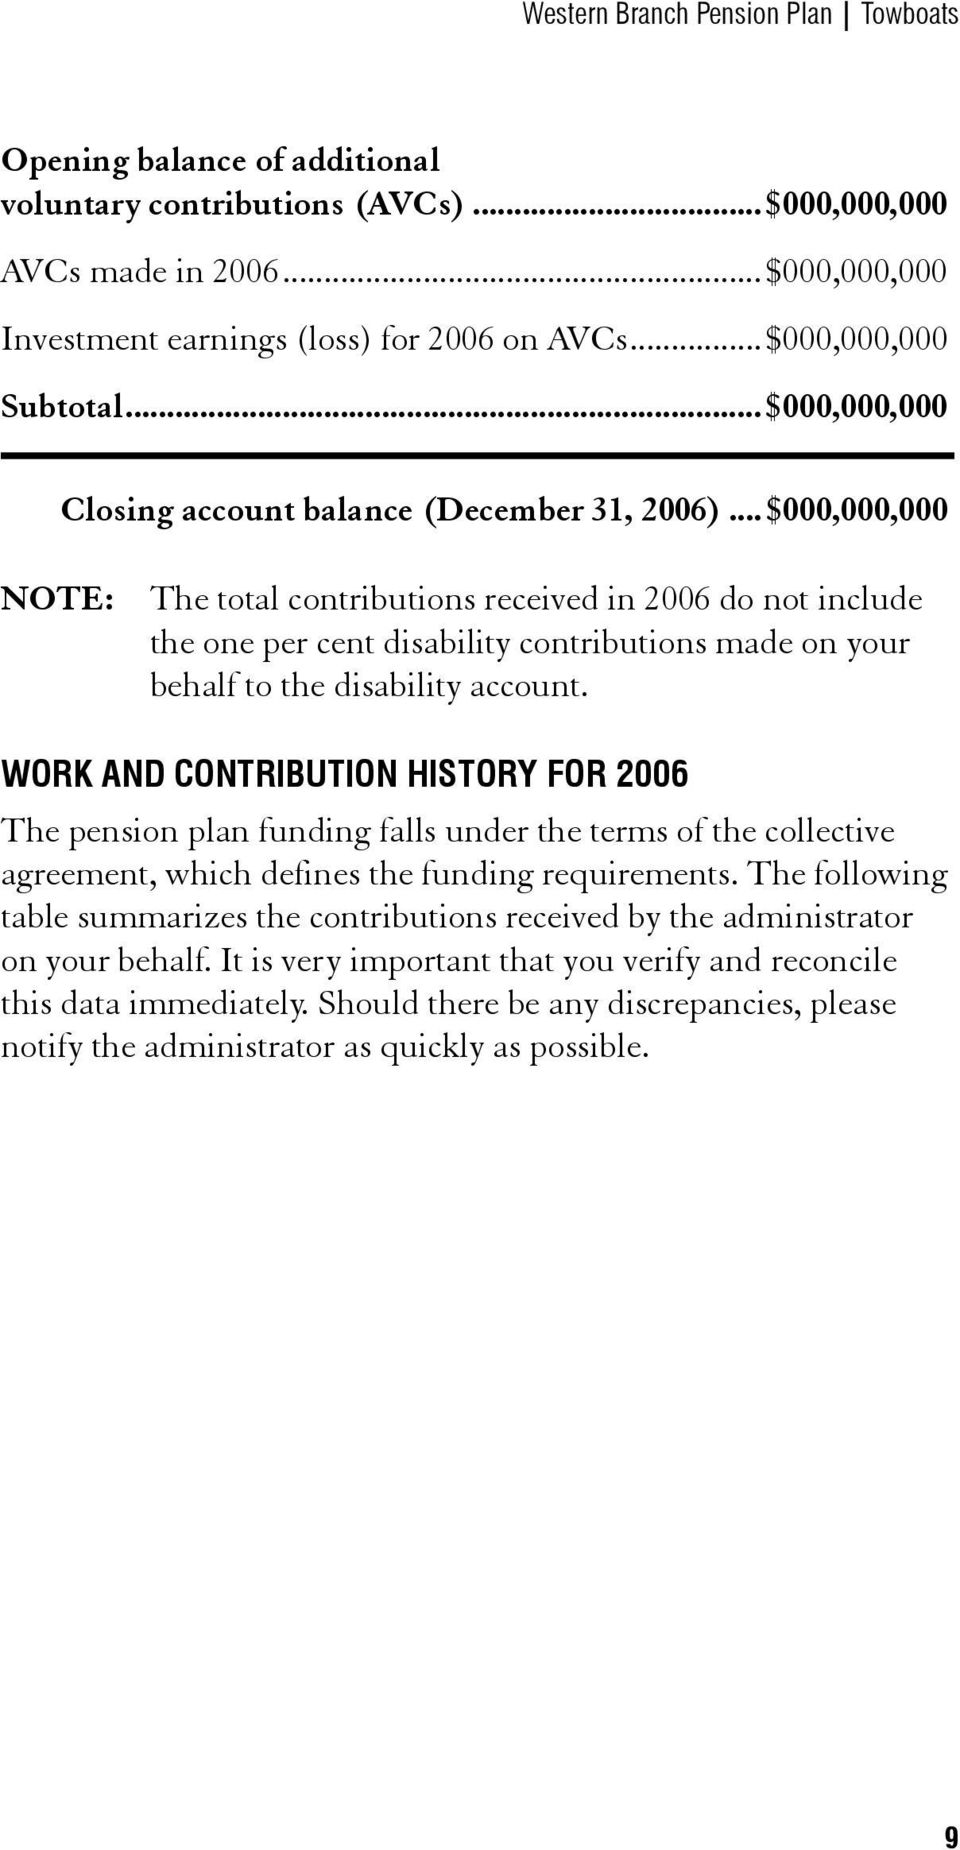 ..$000,000,000 NOTE: The total contributions received in 2006 do not include the one per cent disability contributions made on your behalf to the disability account.